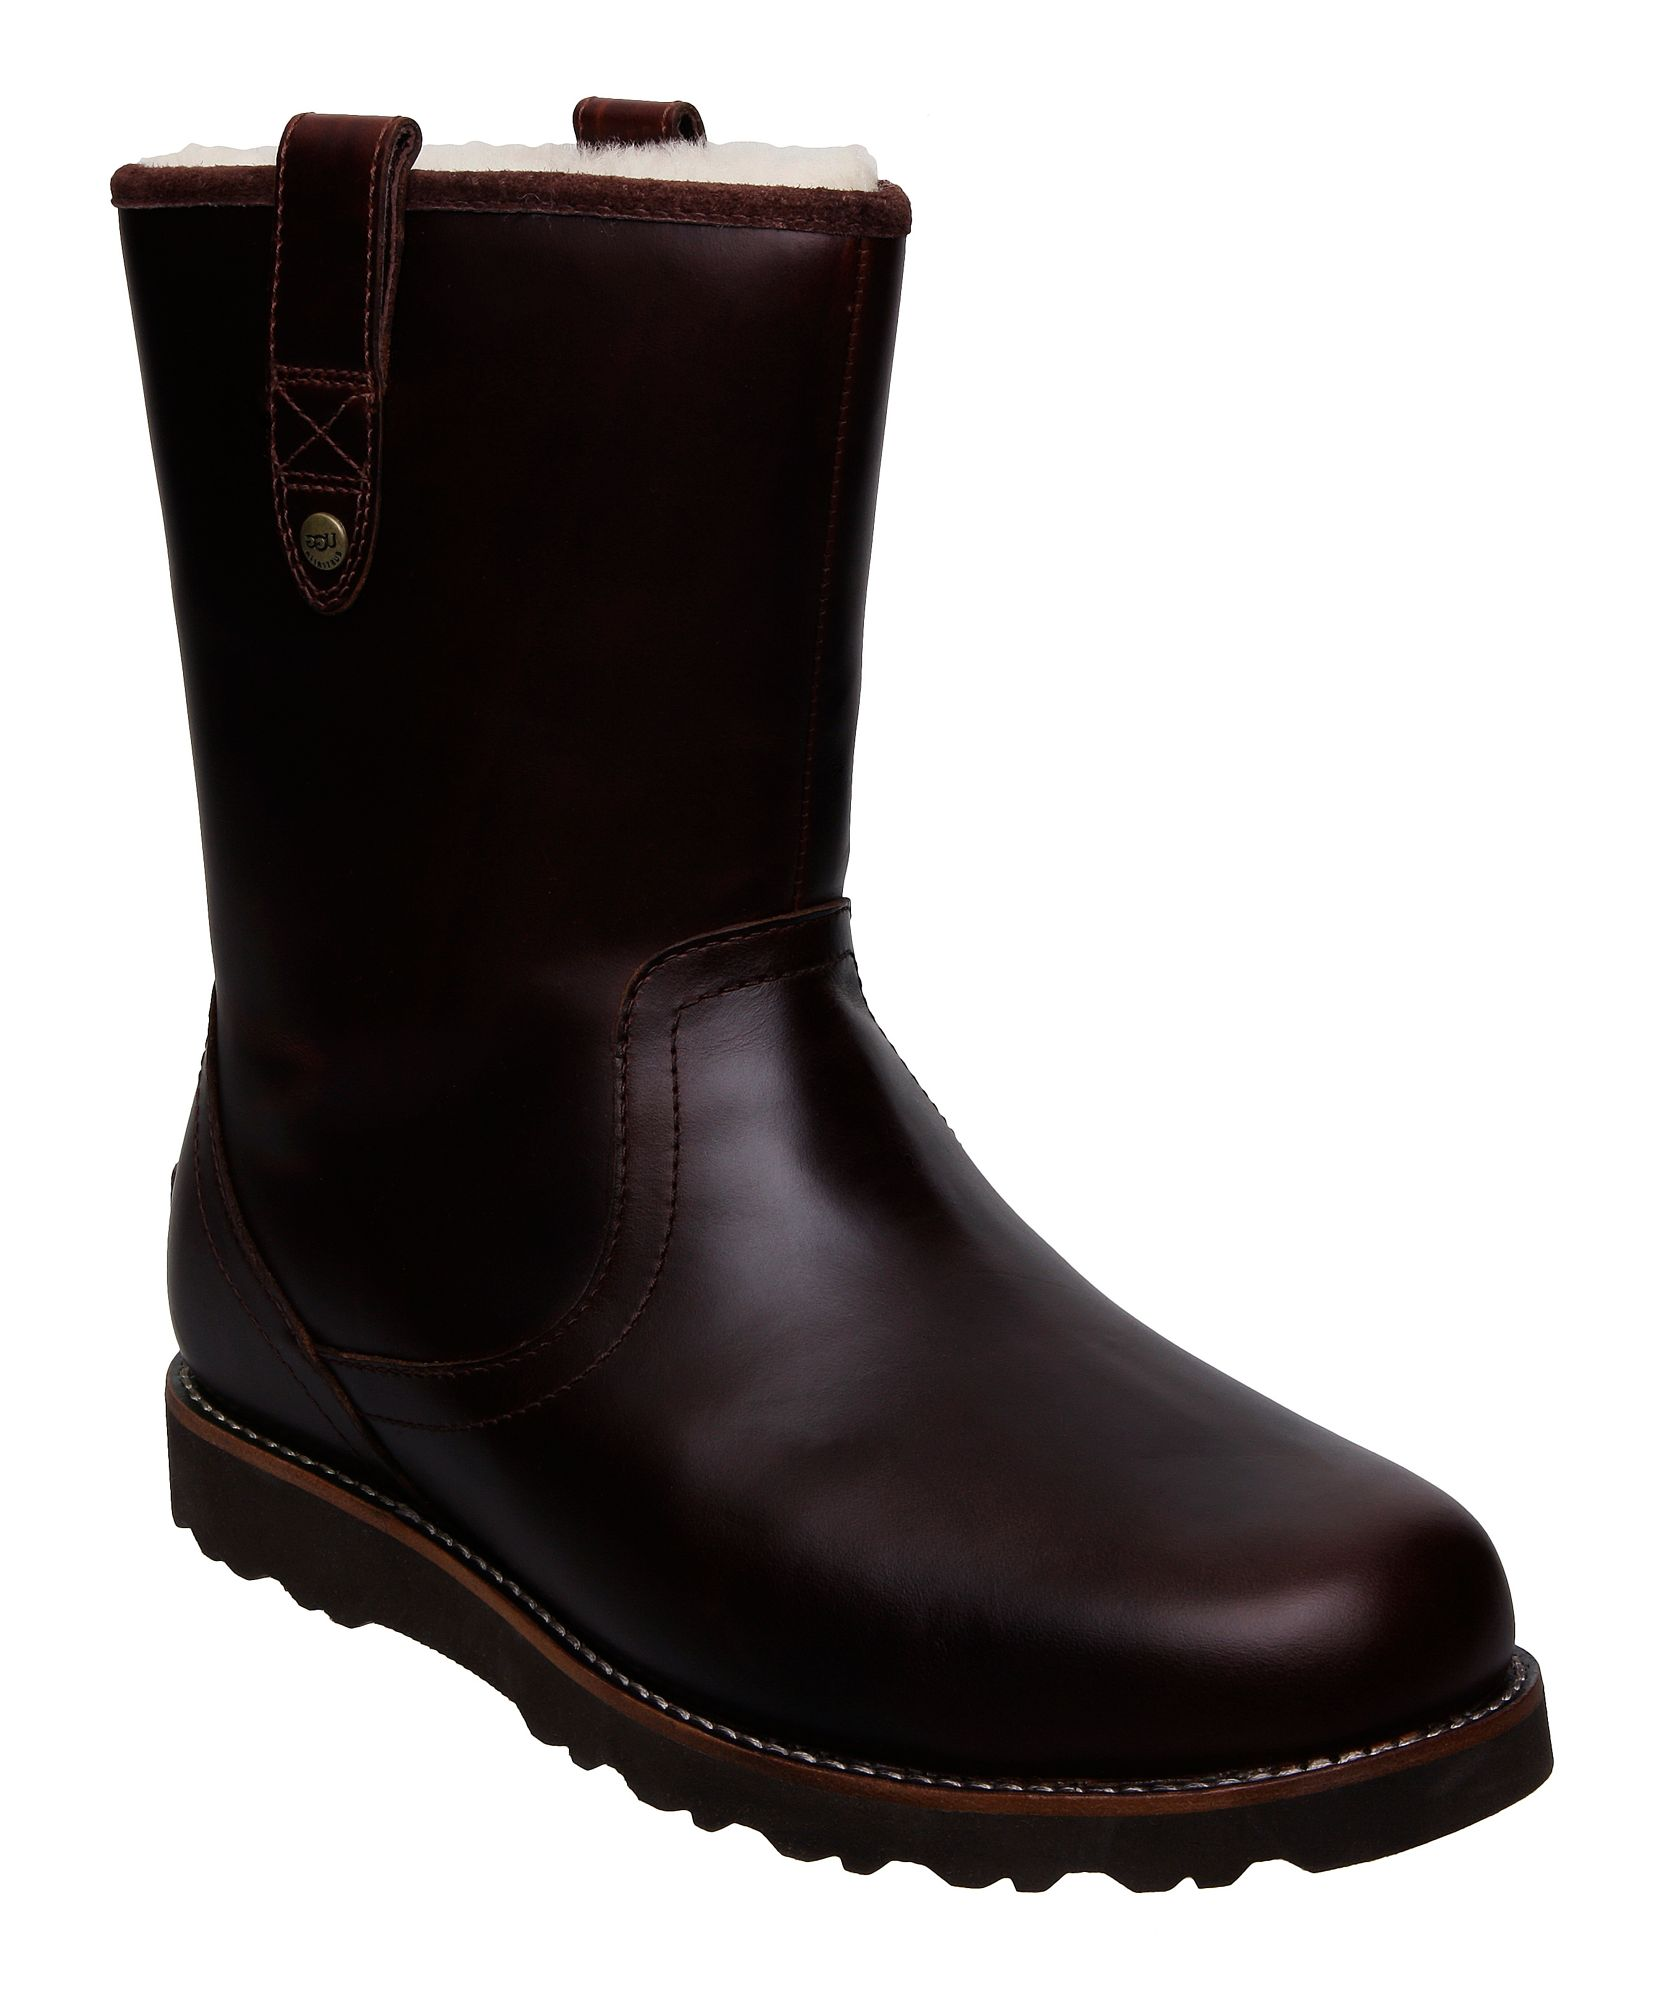 ugg m stoneman casual boots in brown for lyst